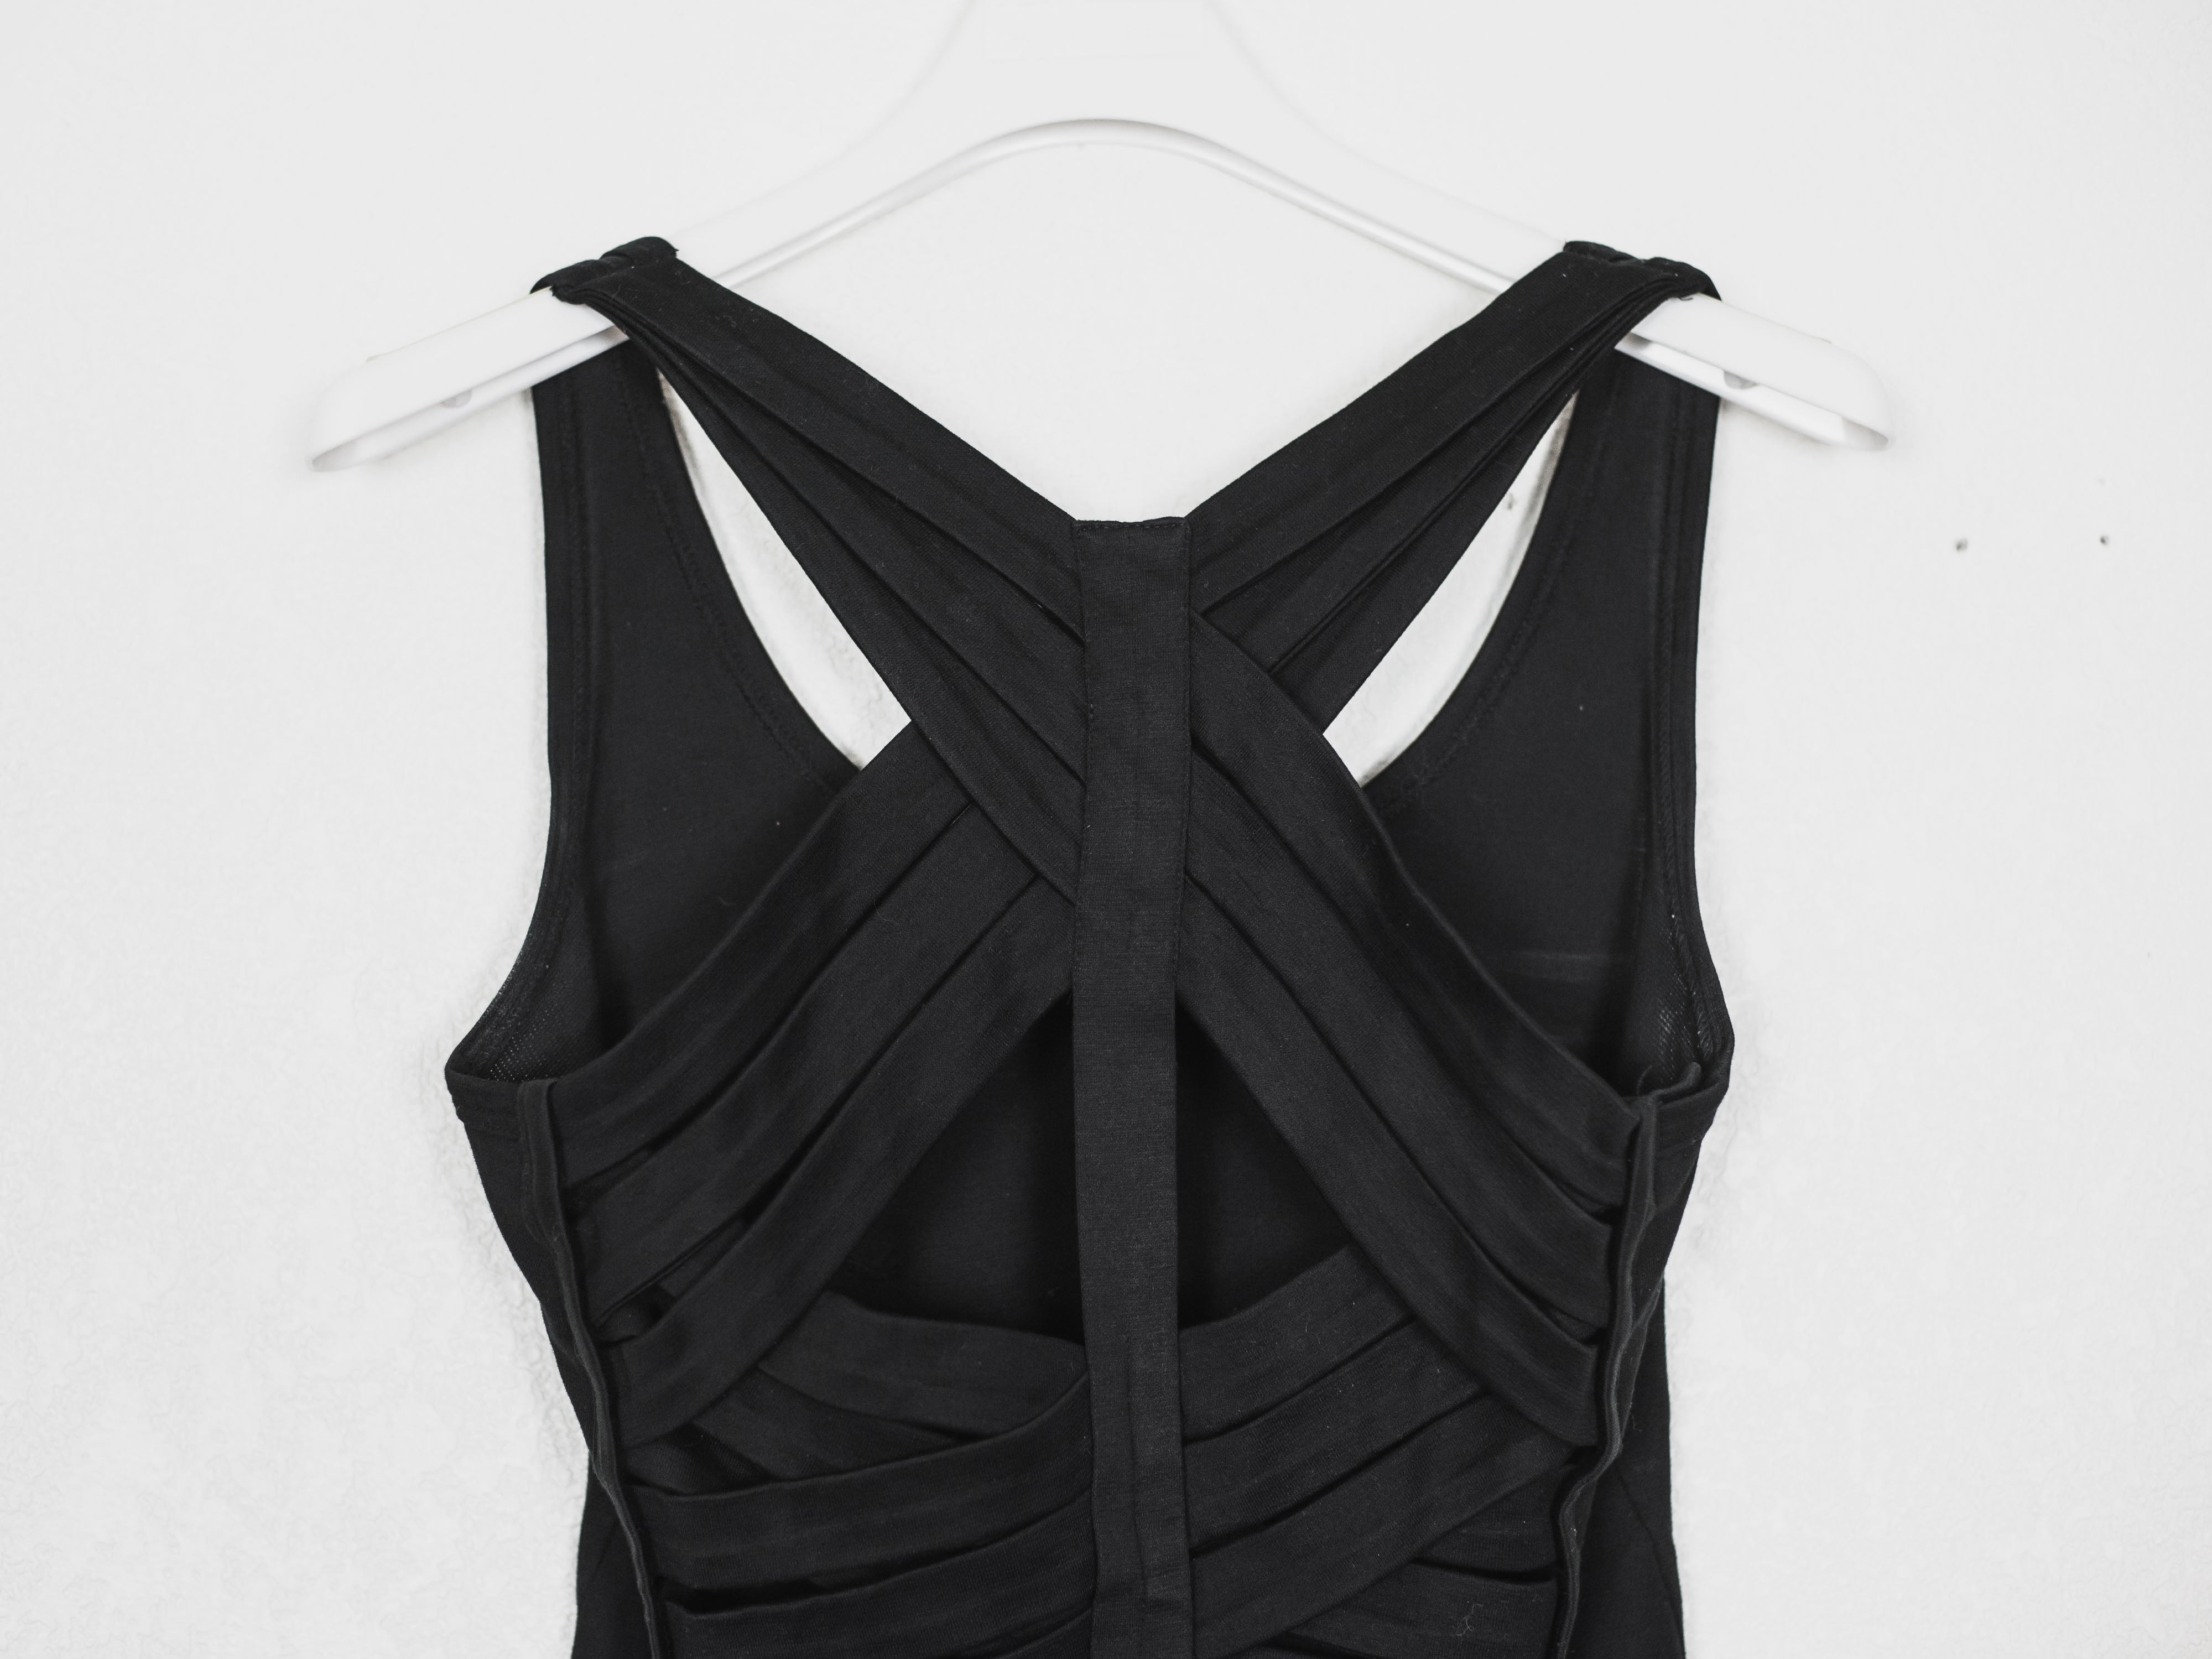 Helmut Lang SS01 Cross Strap Bandage Top Sample